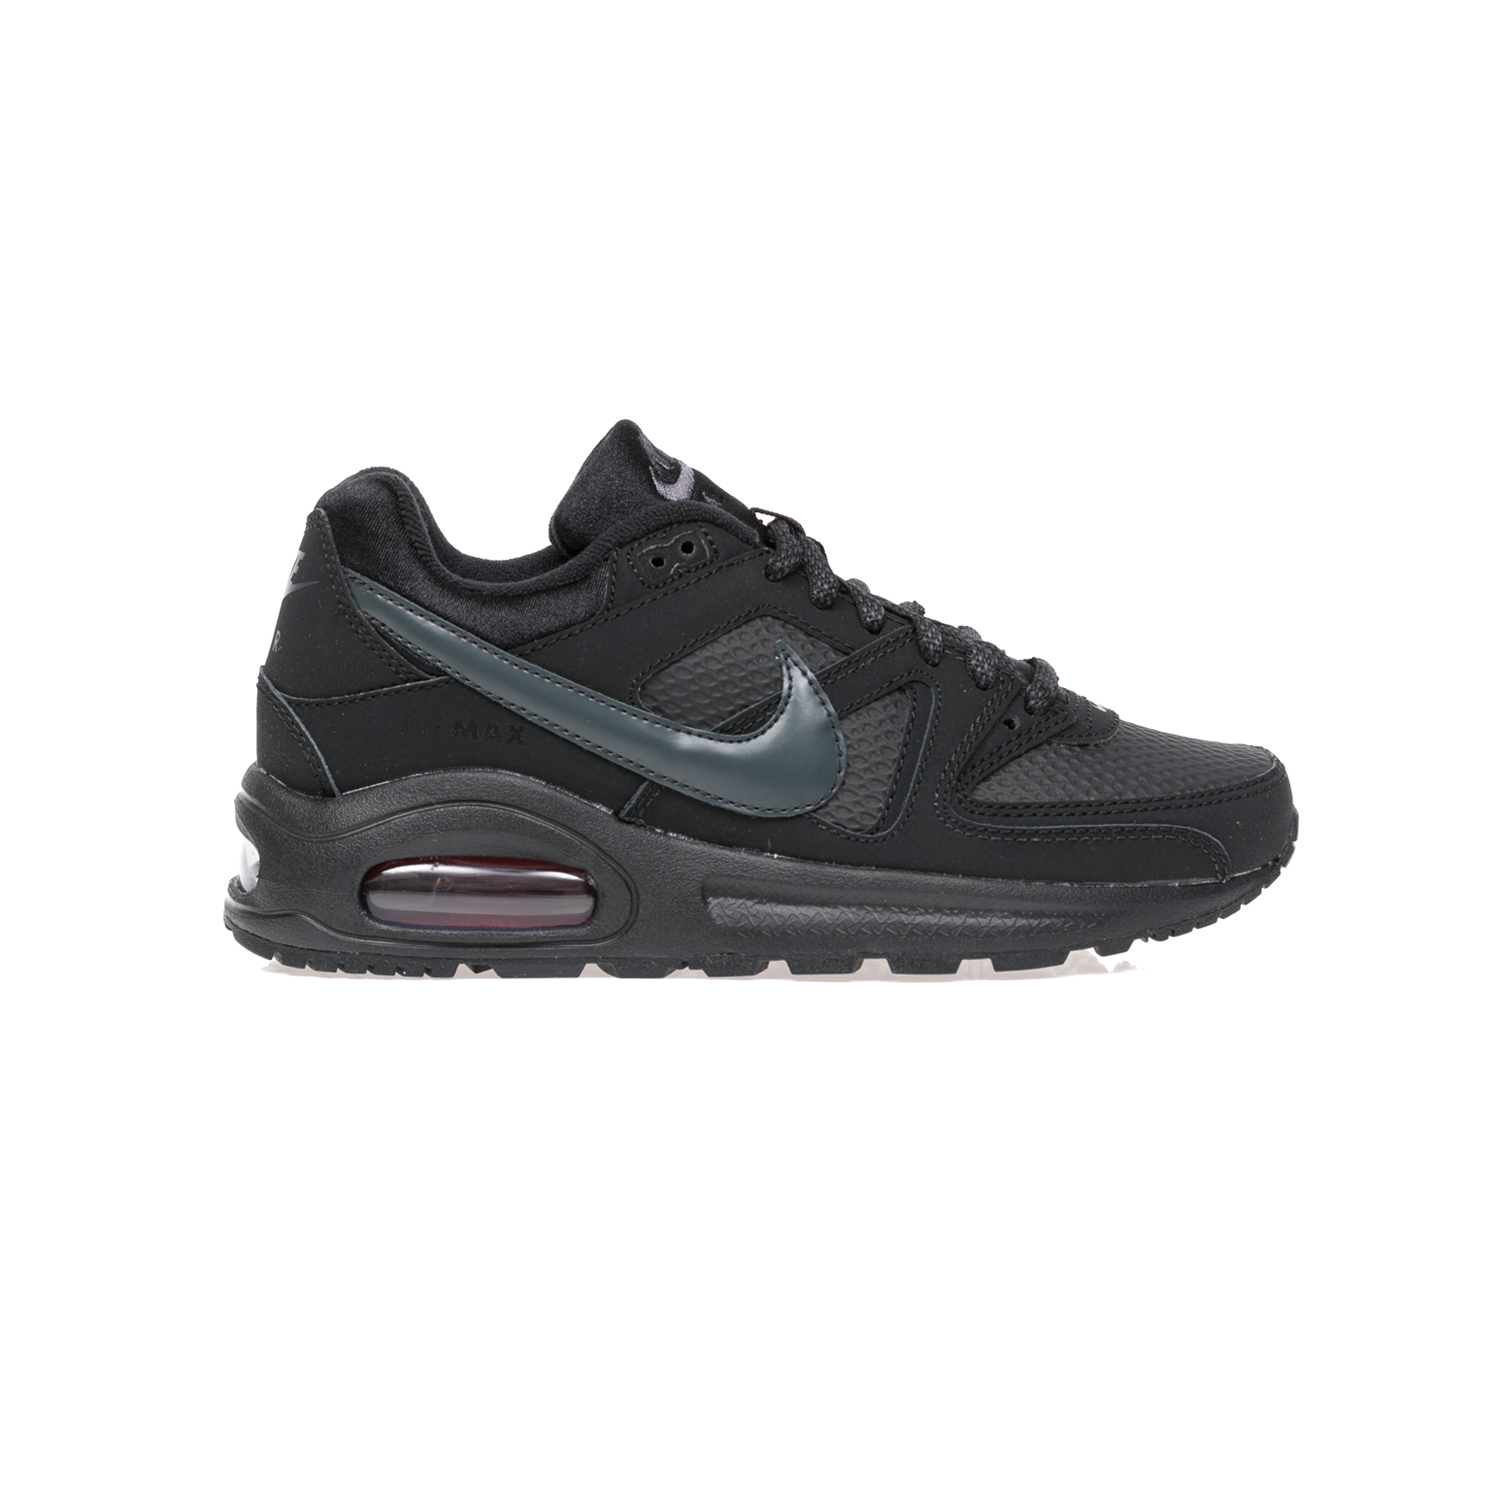 NIKE – Παιδικά παπούτσια NIKE AIR MAX COMMAND PRM GS μαύρα